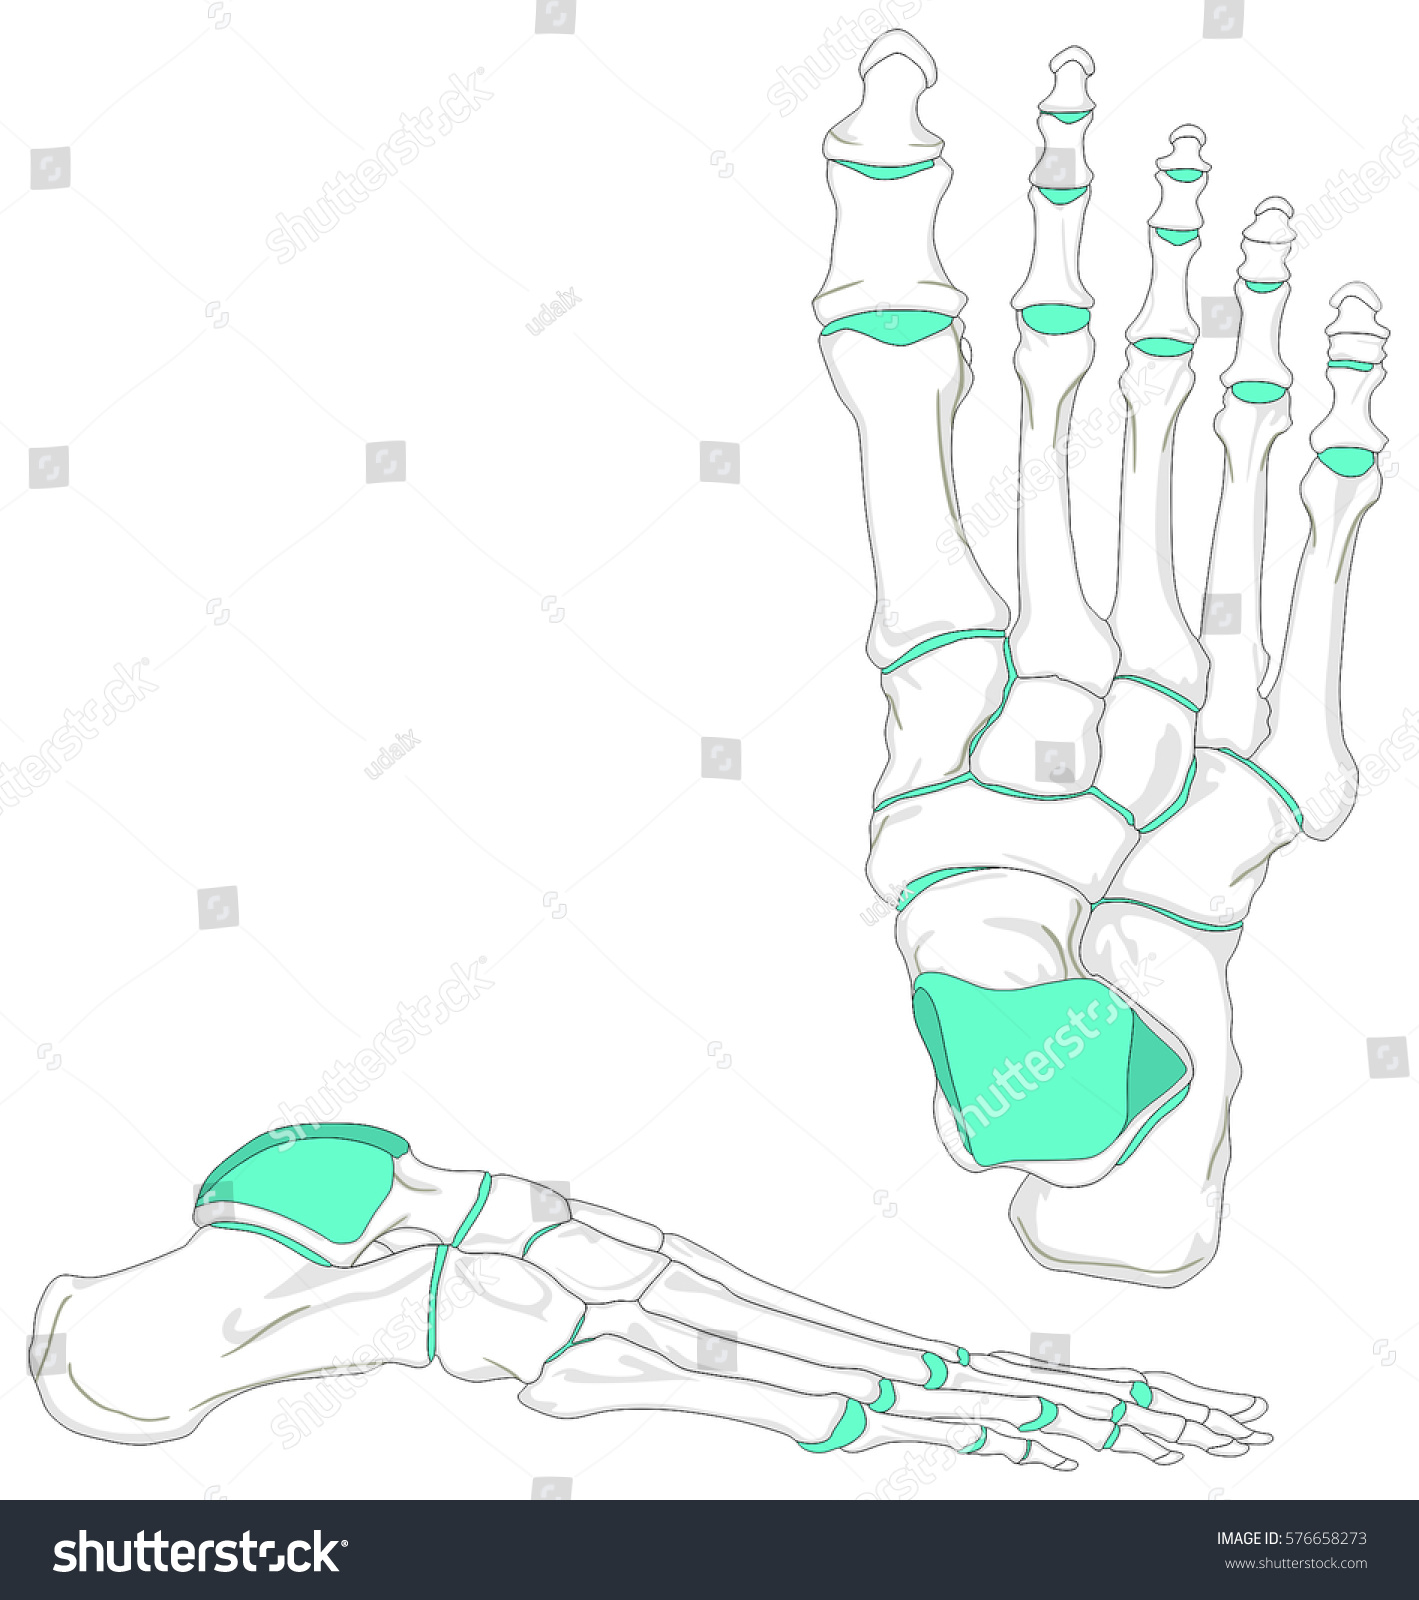 Human Foot Bones Anatomy Diagram Anatomical Stock Illustration ...